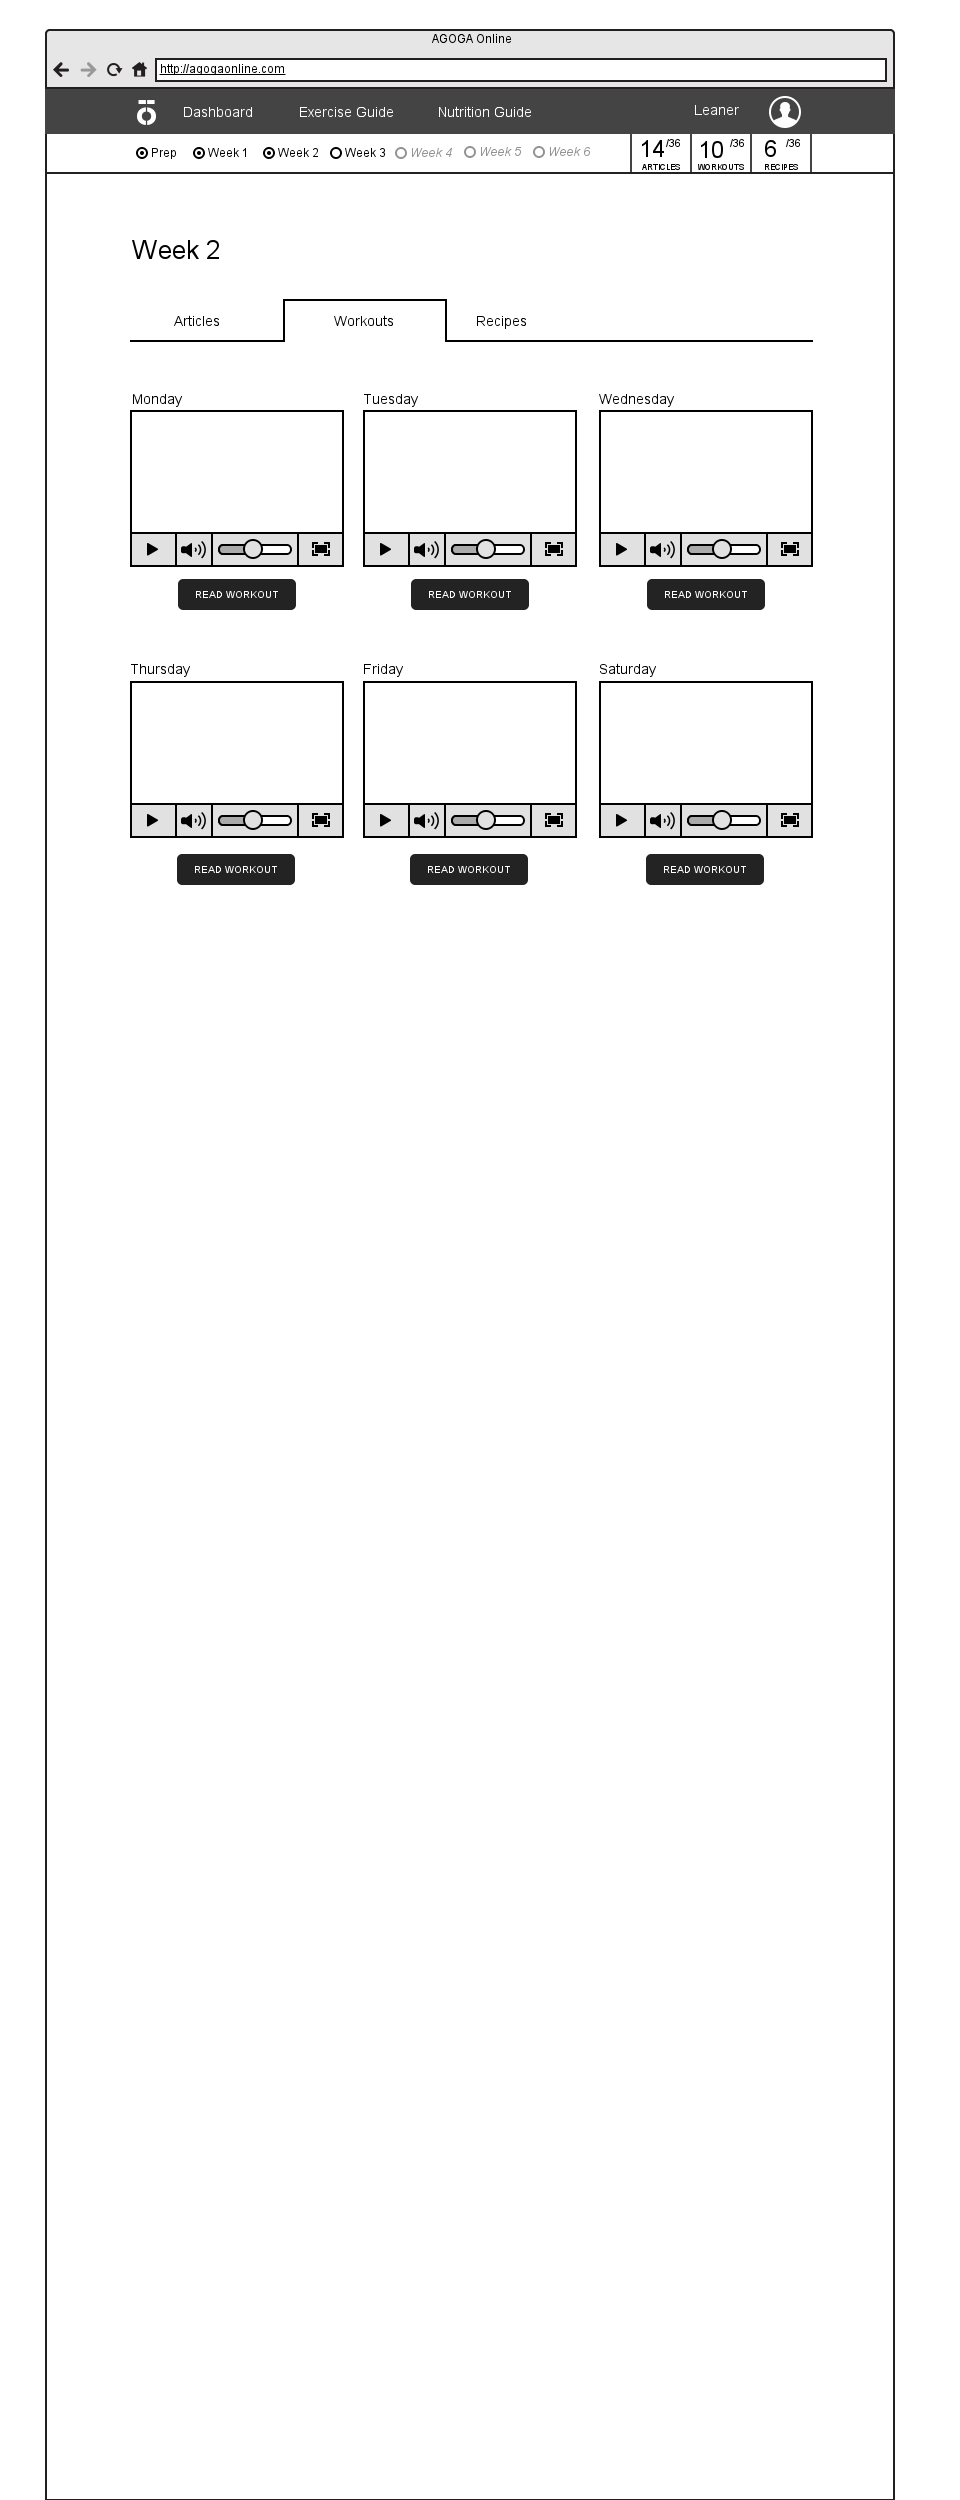 Week_2_-_Workouts (11).png